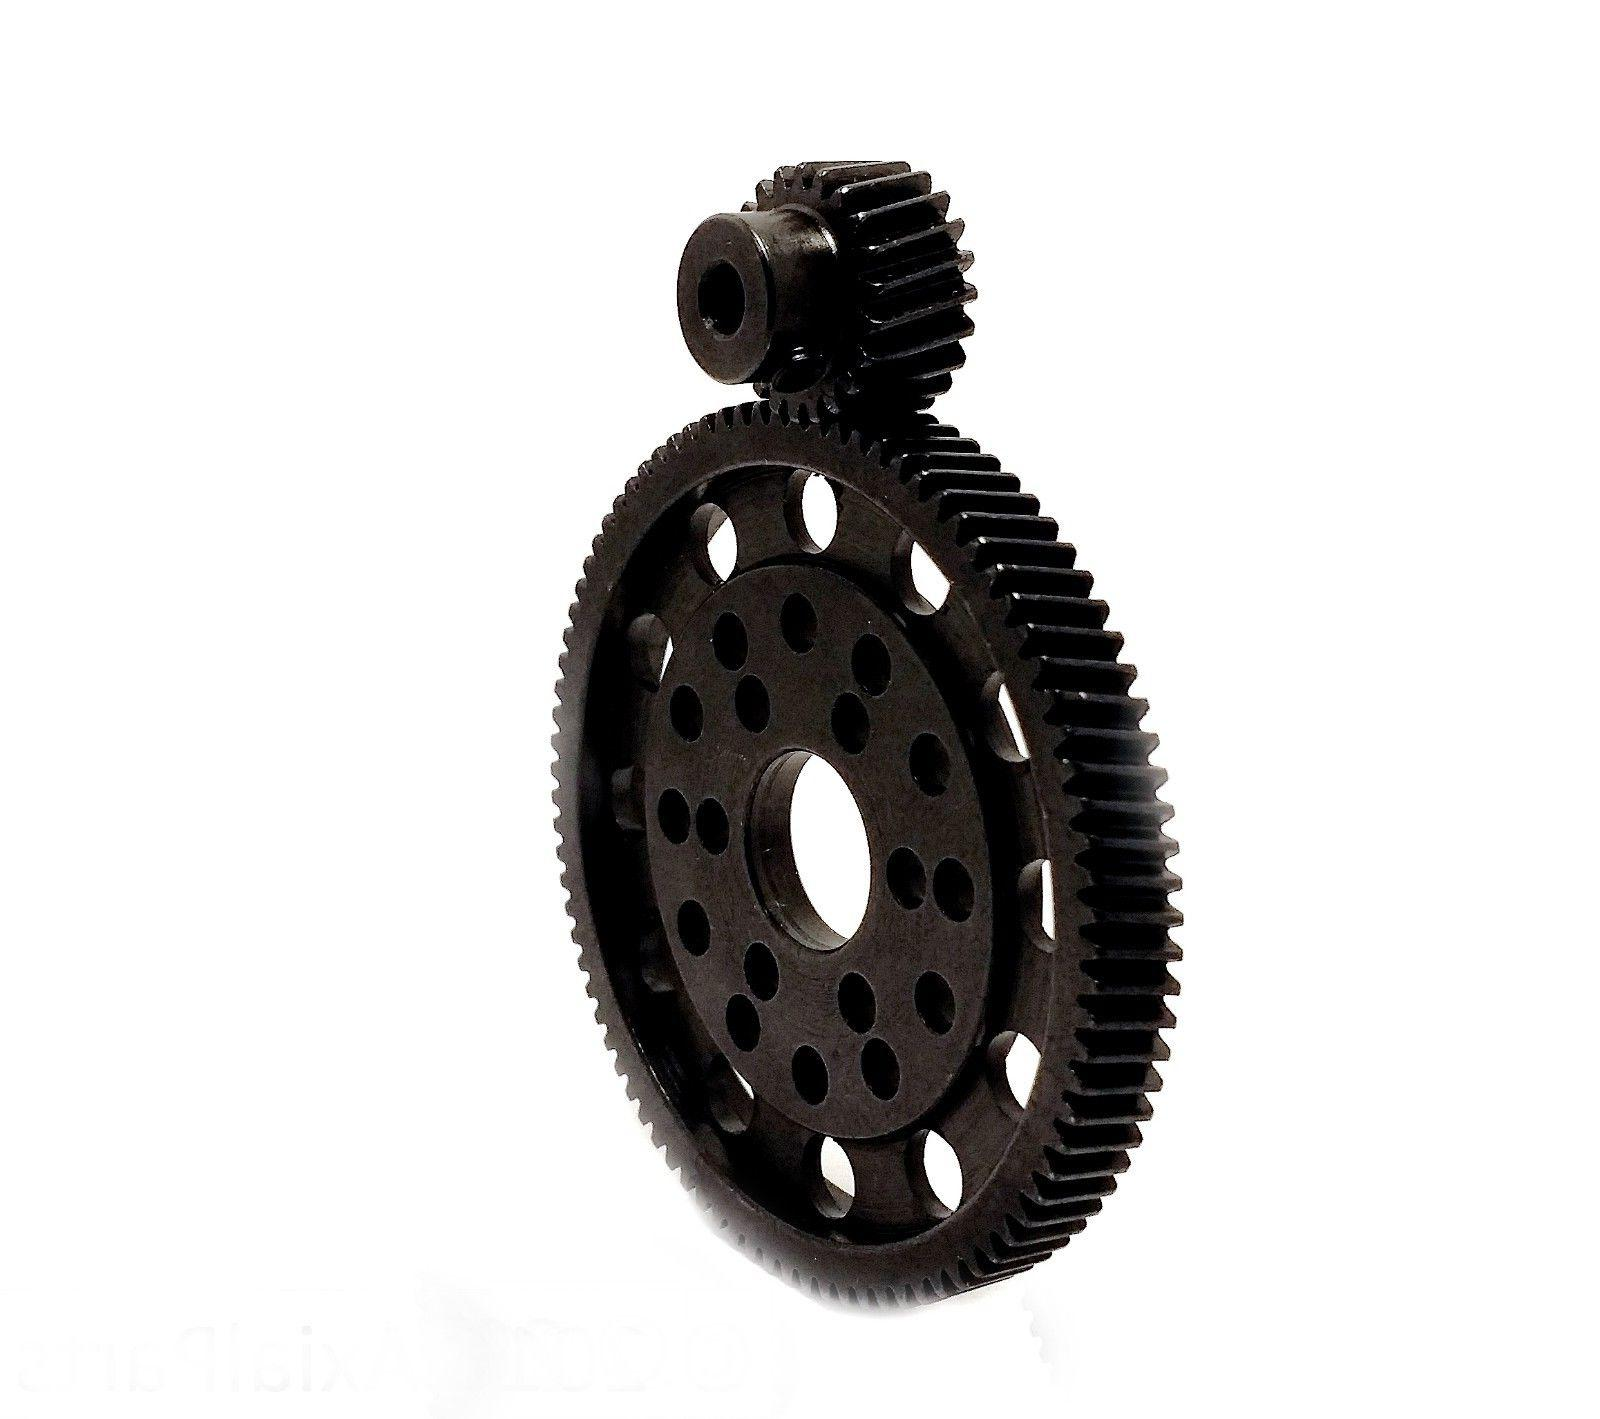 Hardened Steel 87T Metal Spur Gear 22T Pinion Wraith SCX10 E